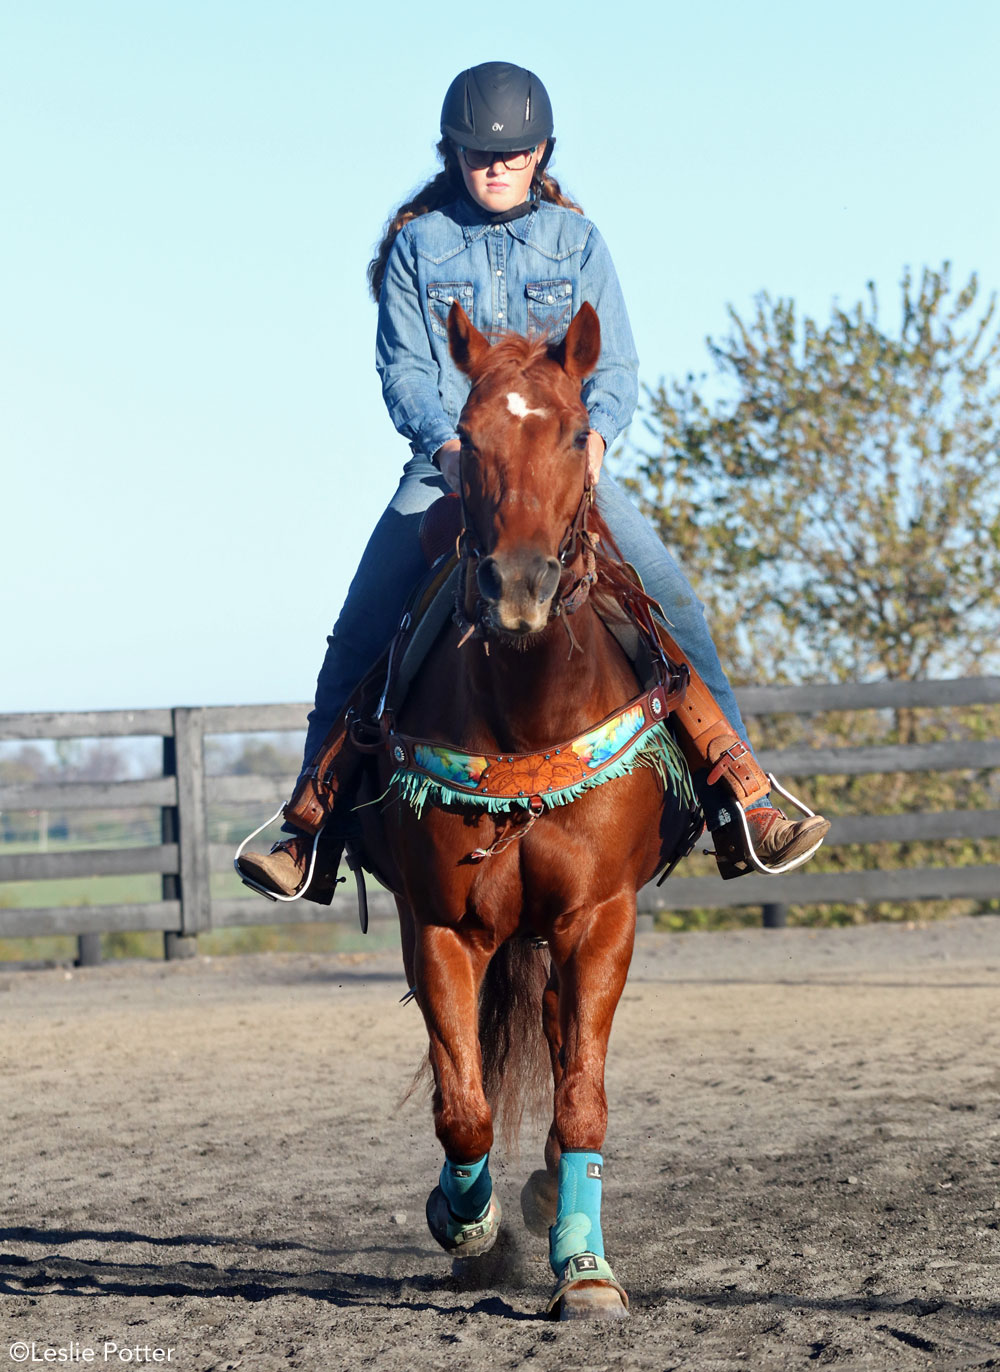 Staying centered in the saddle